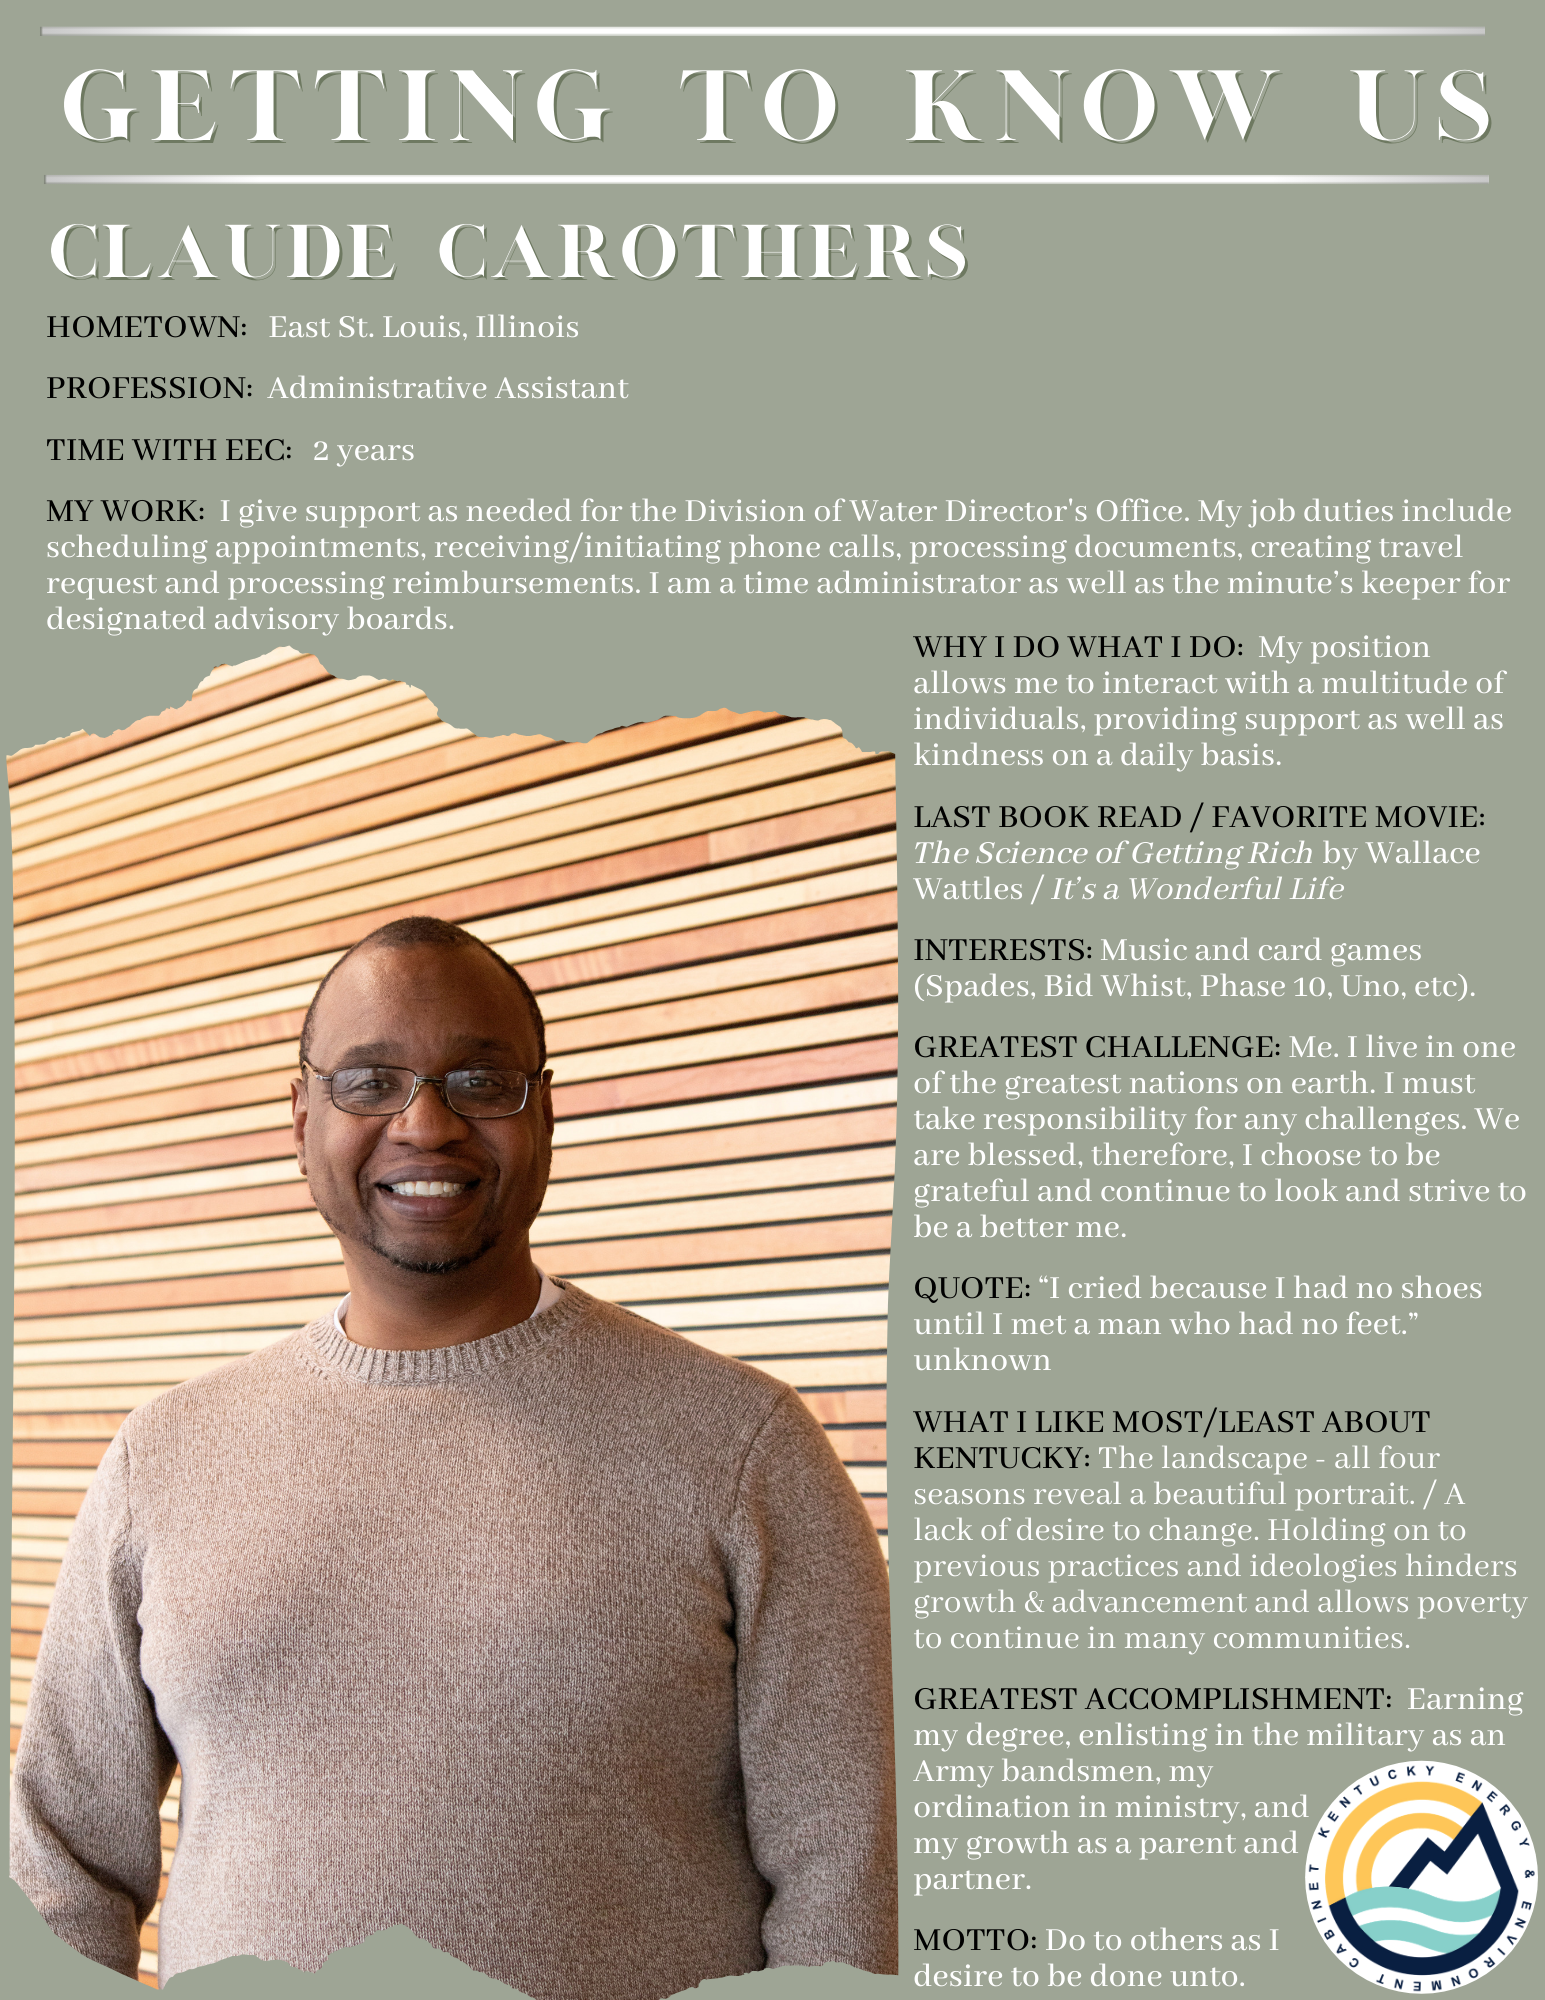 Getting to Know Us: Claude Carothers